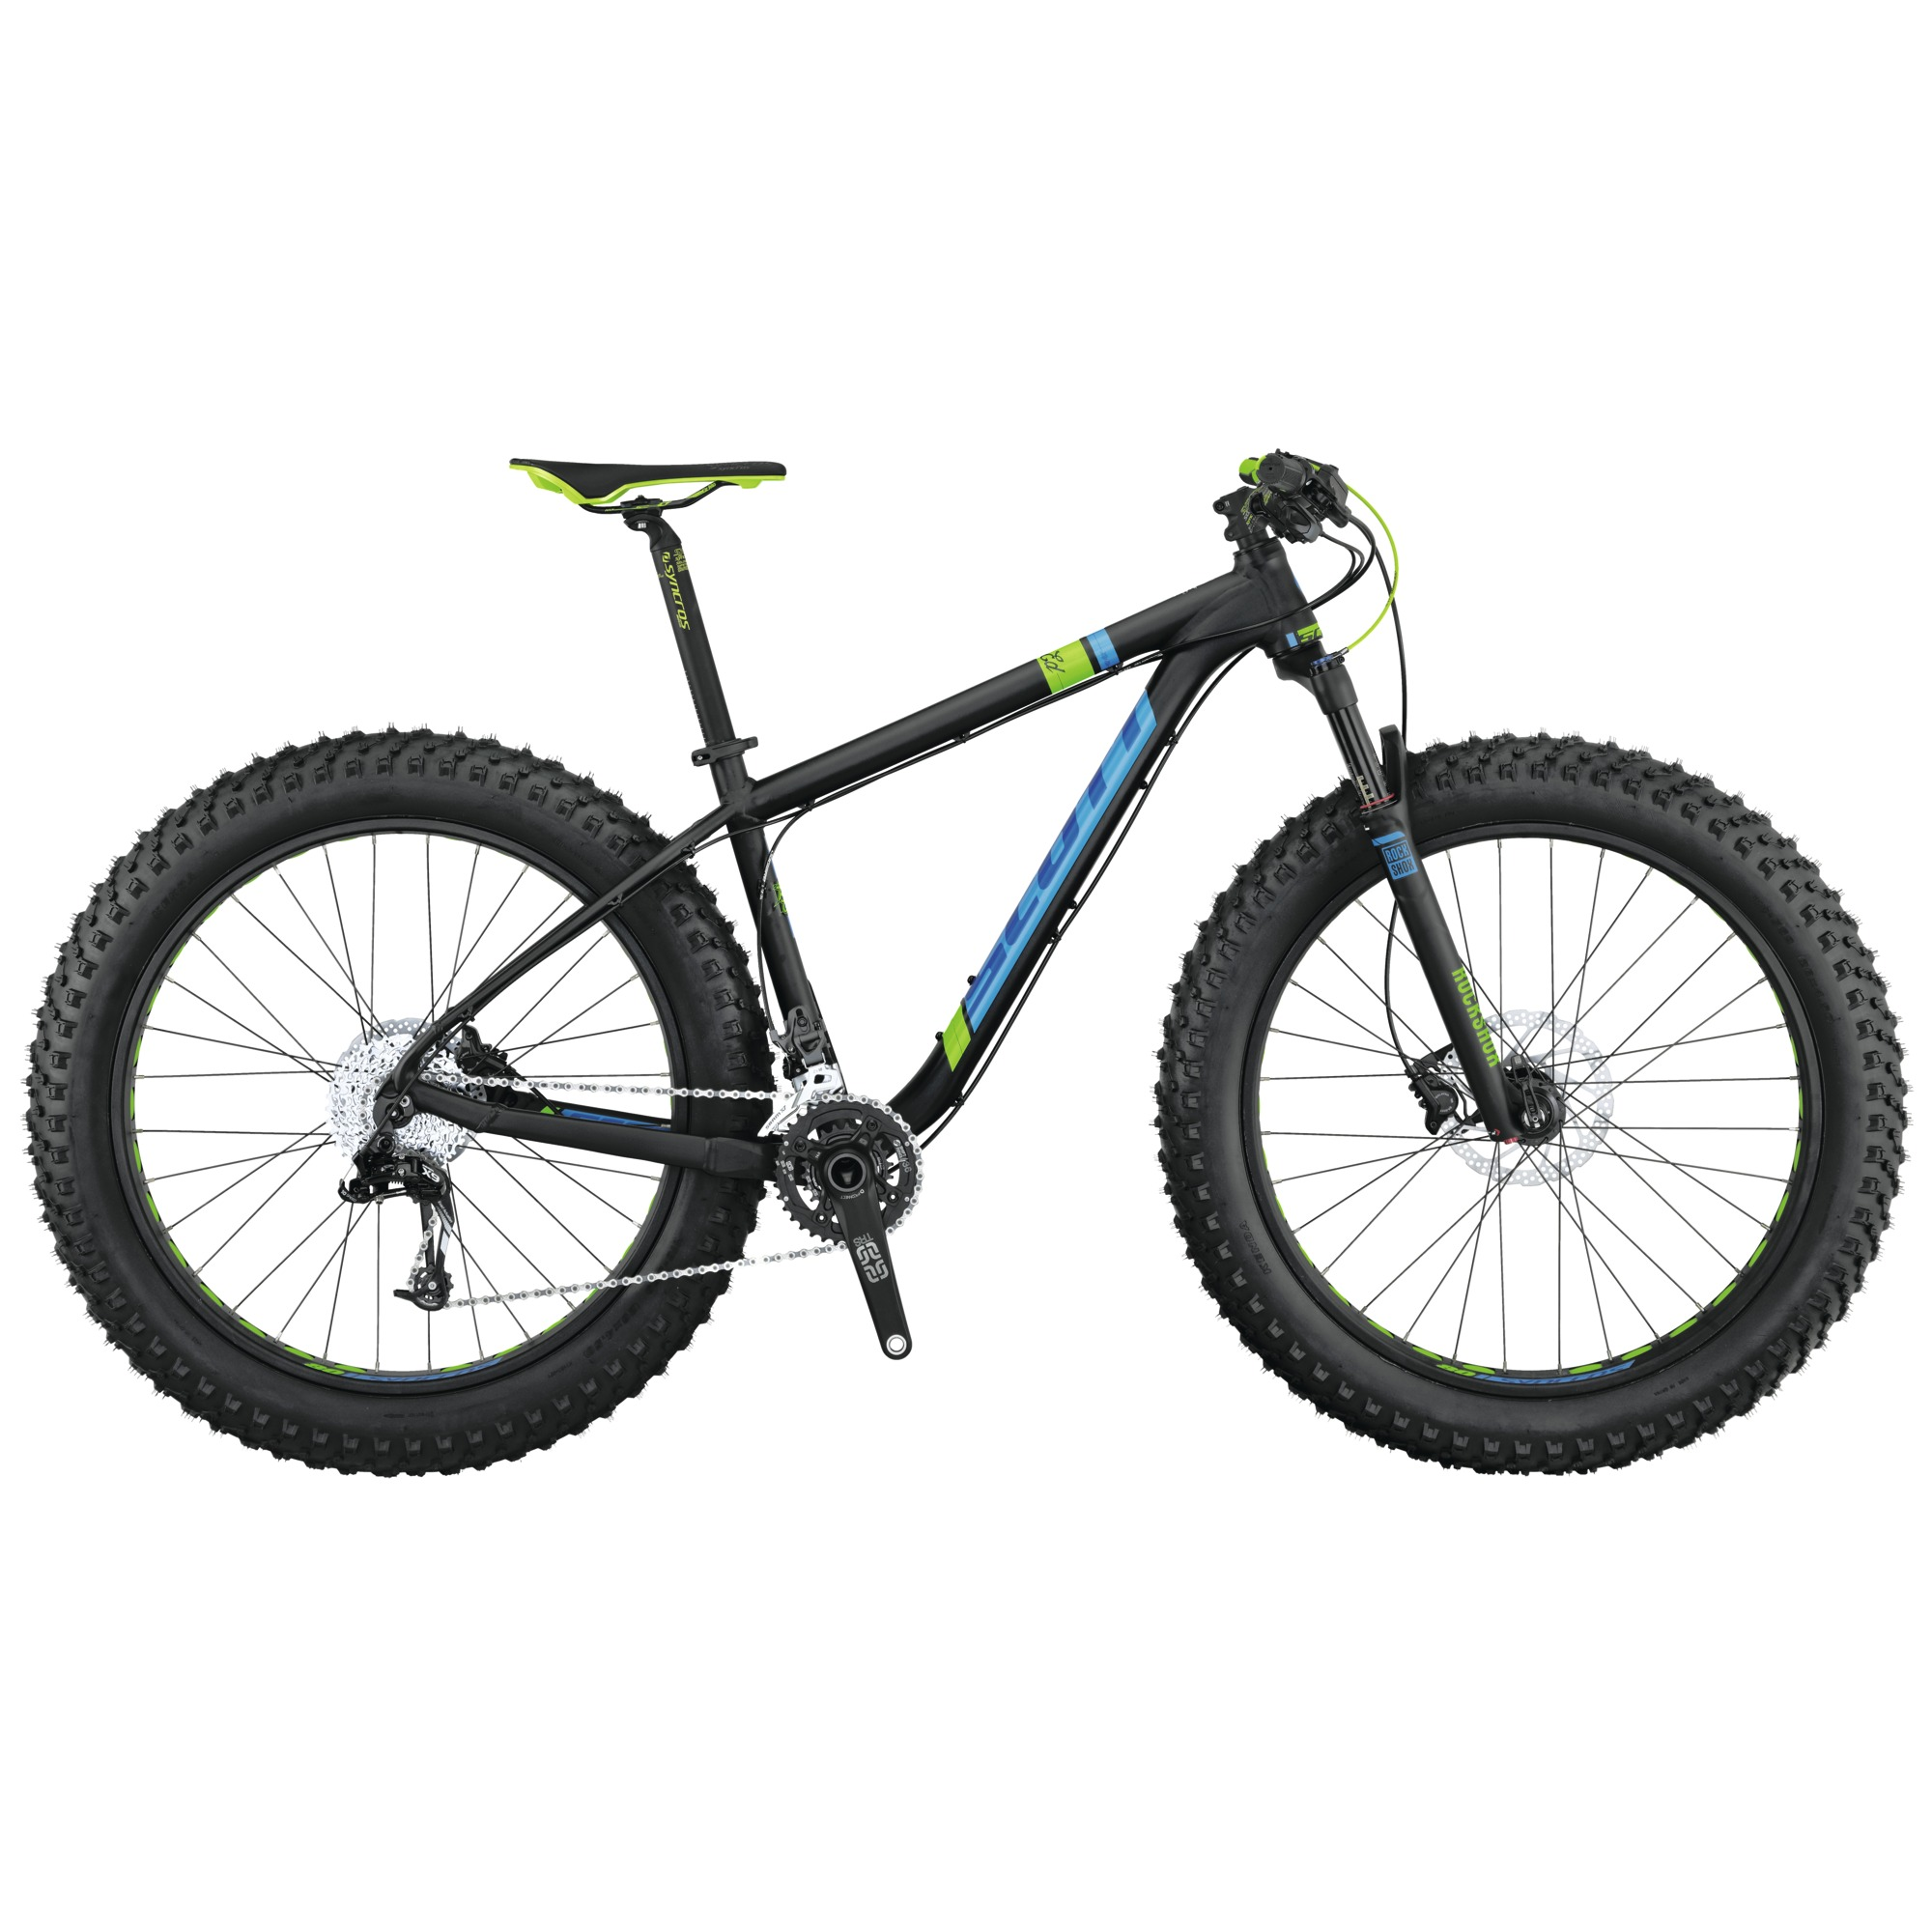 Scott fat bike